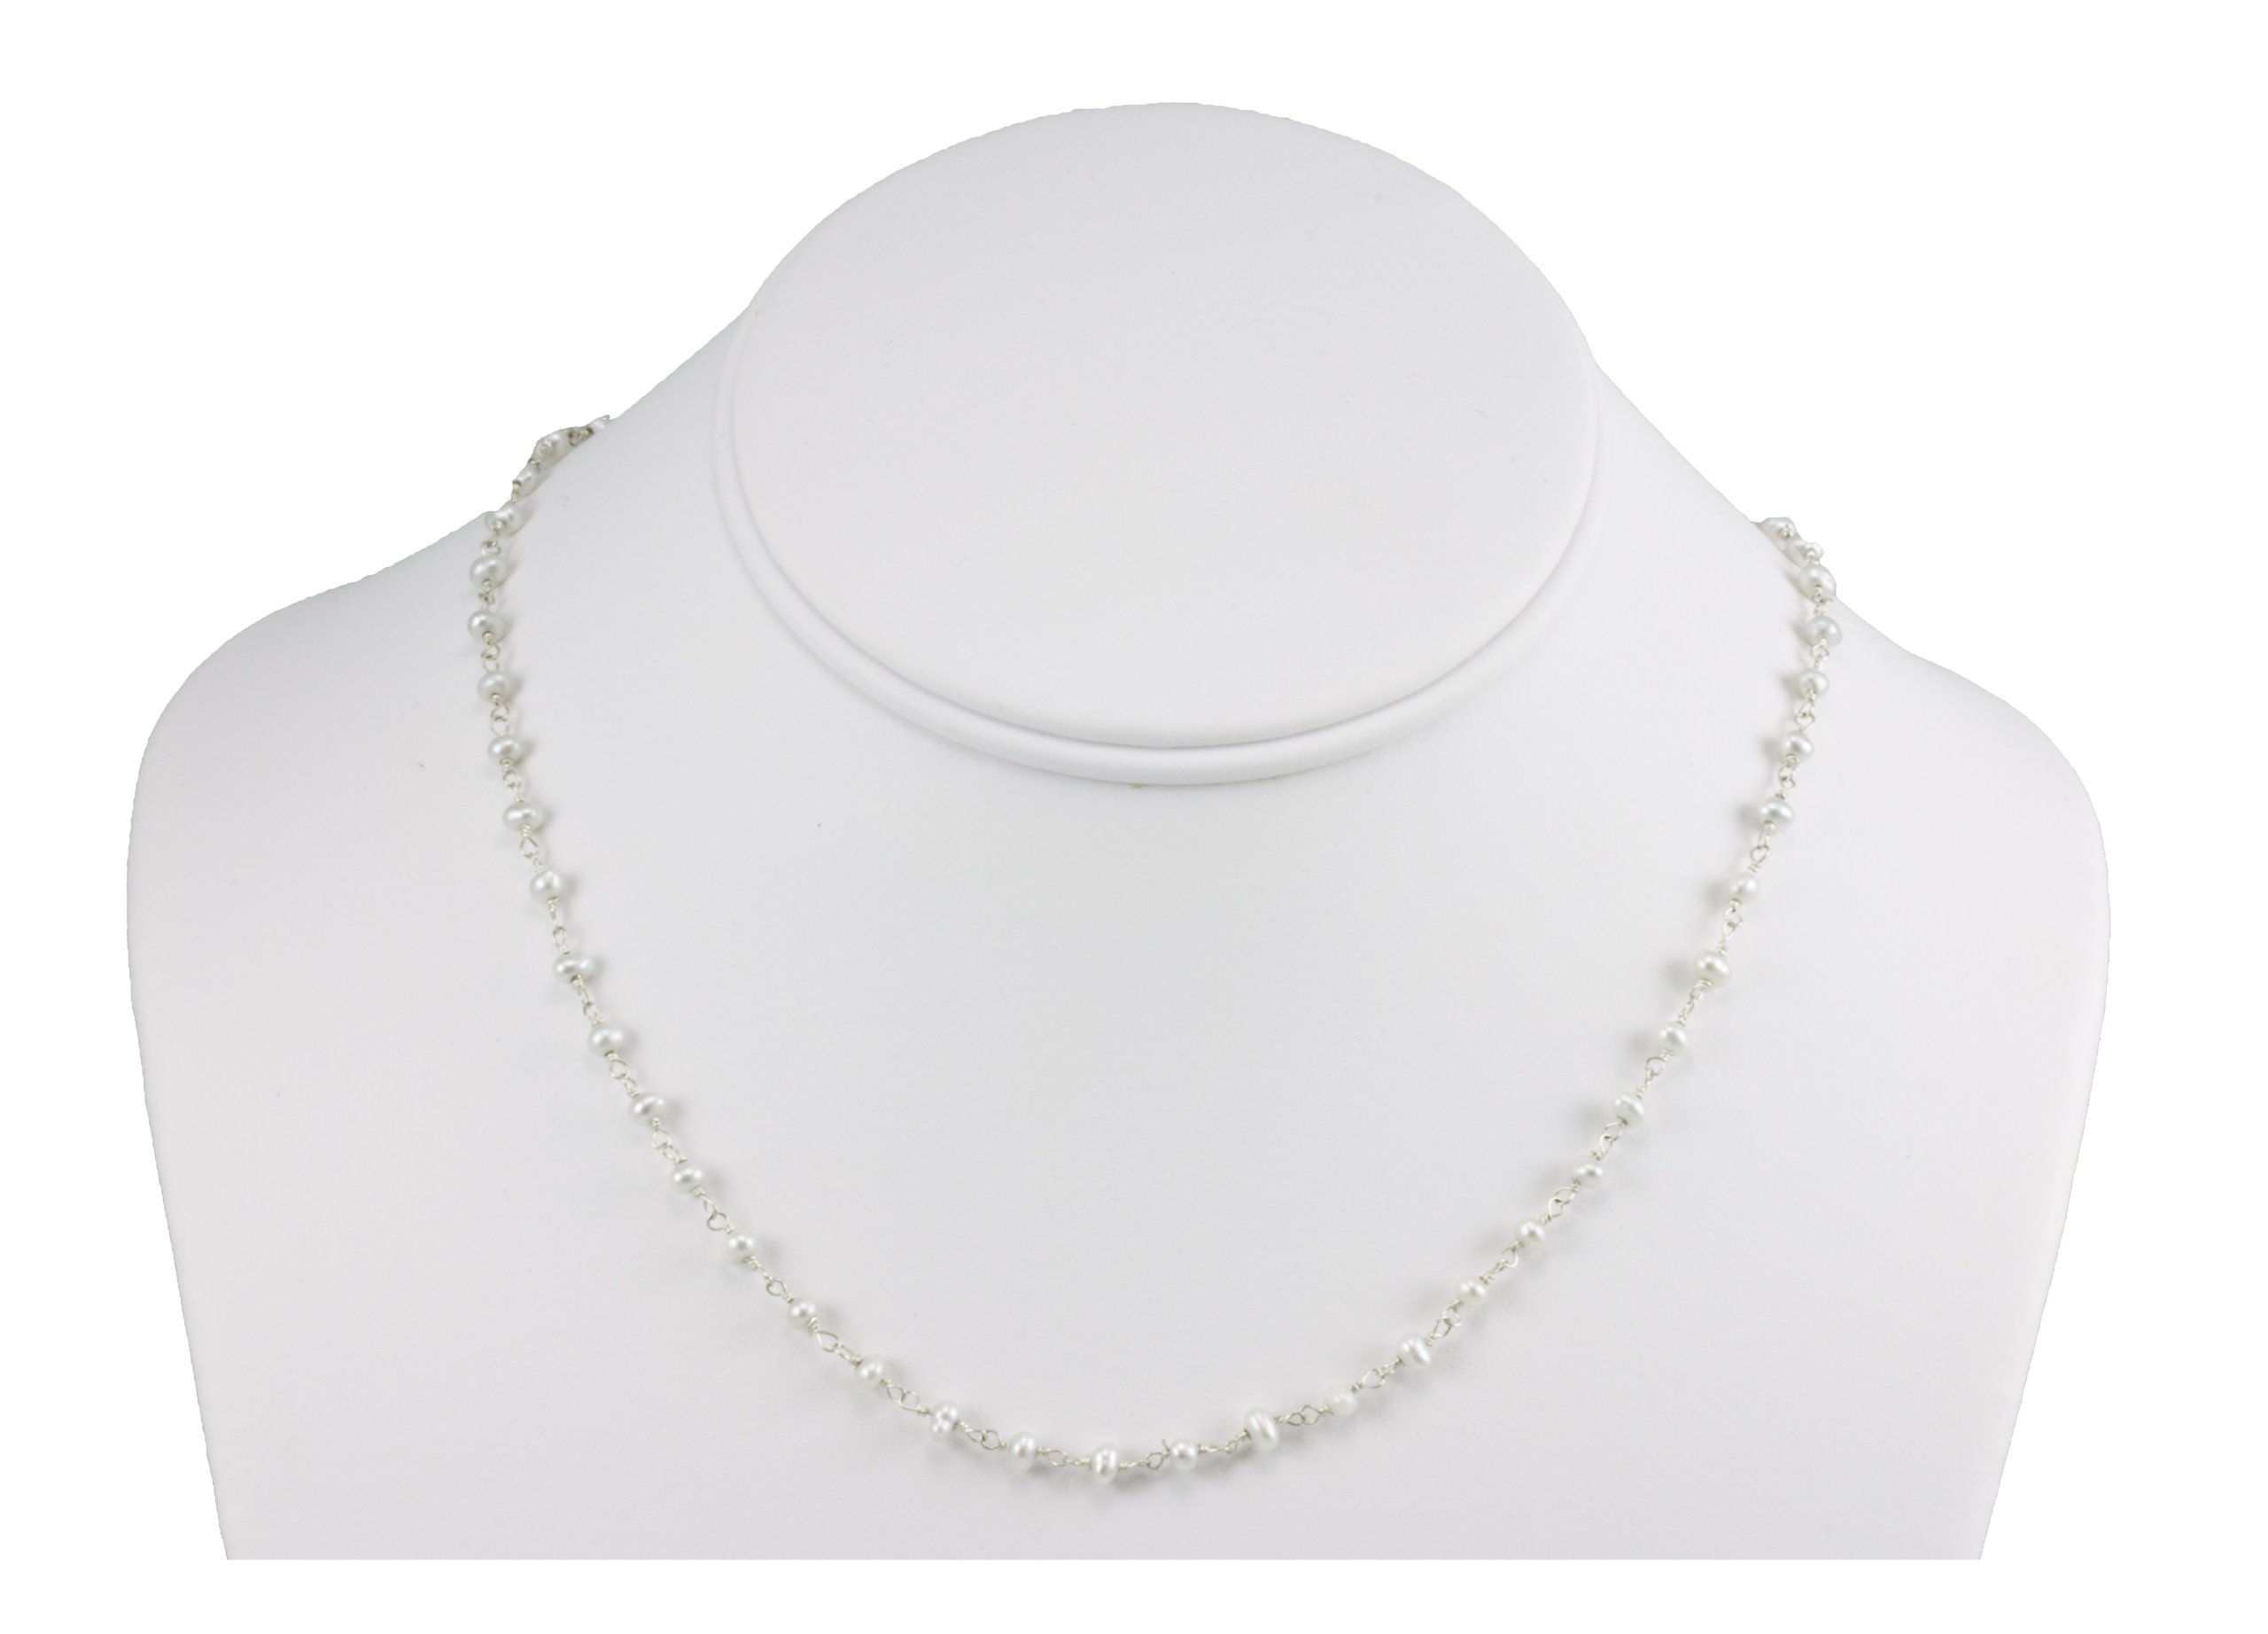 Sterling Silver And Silvertone Freshwater Cultured Pearl Necklace White Small Chain Link (3.0-3.5mm), 18''